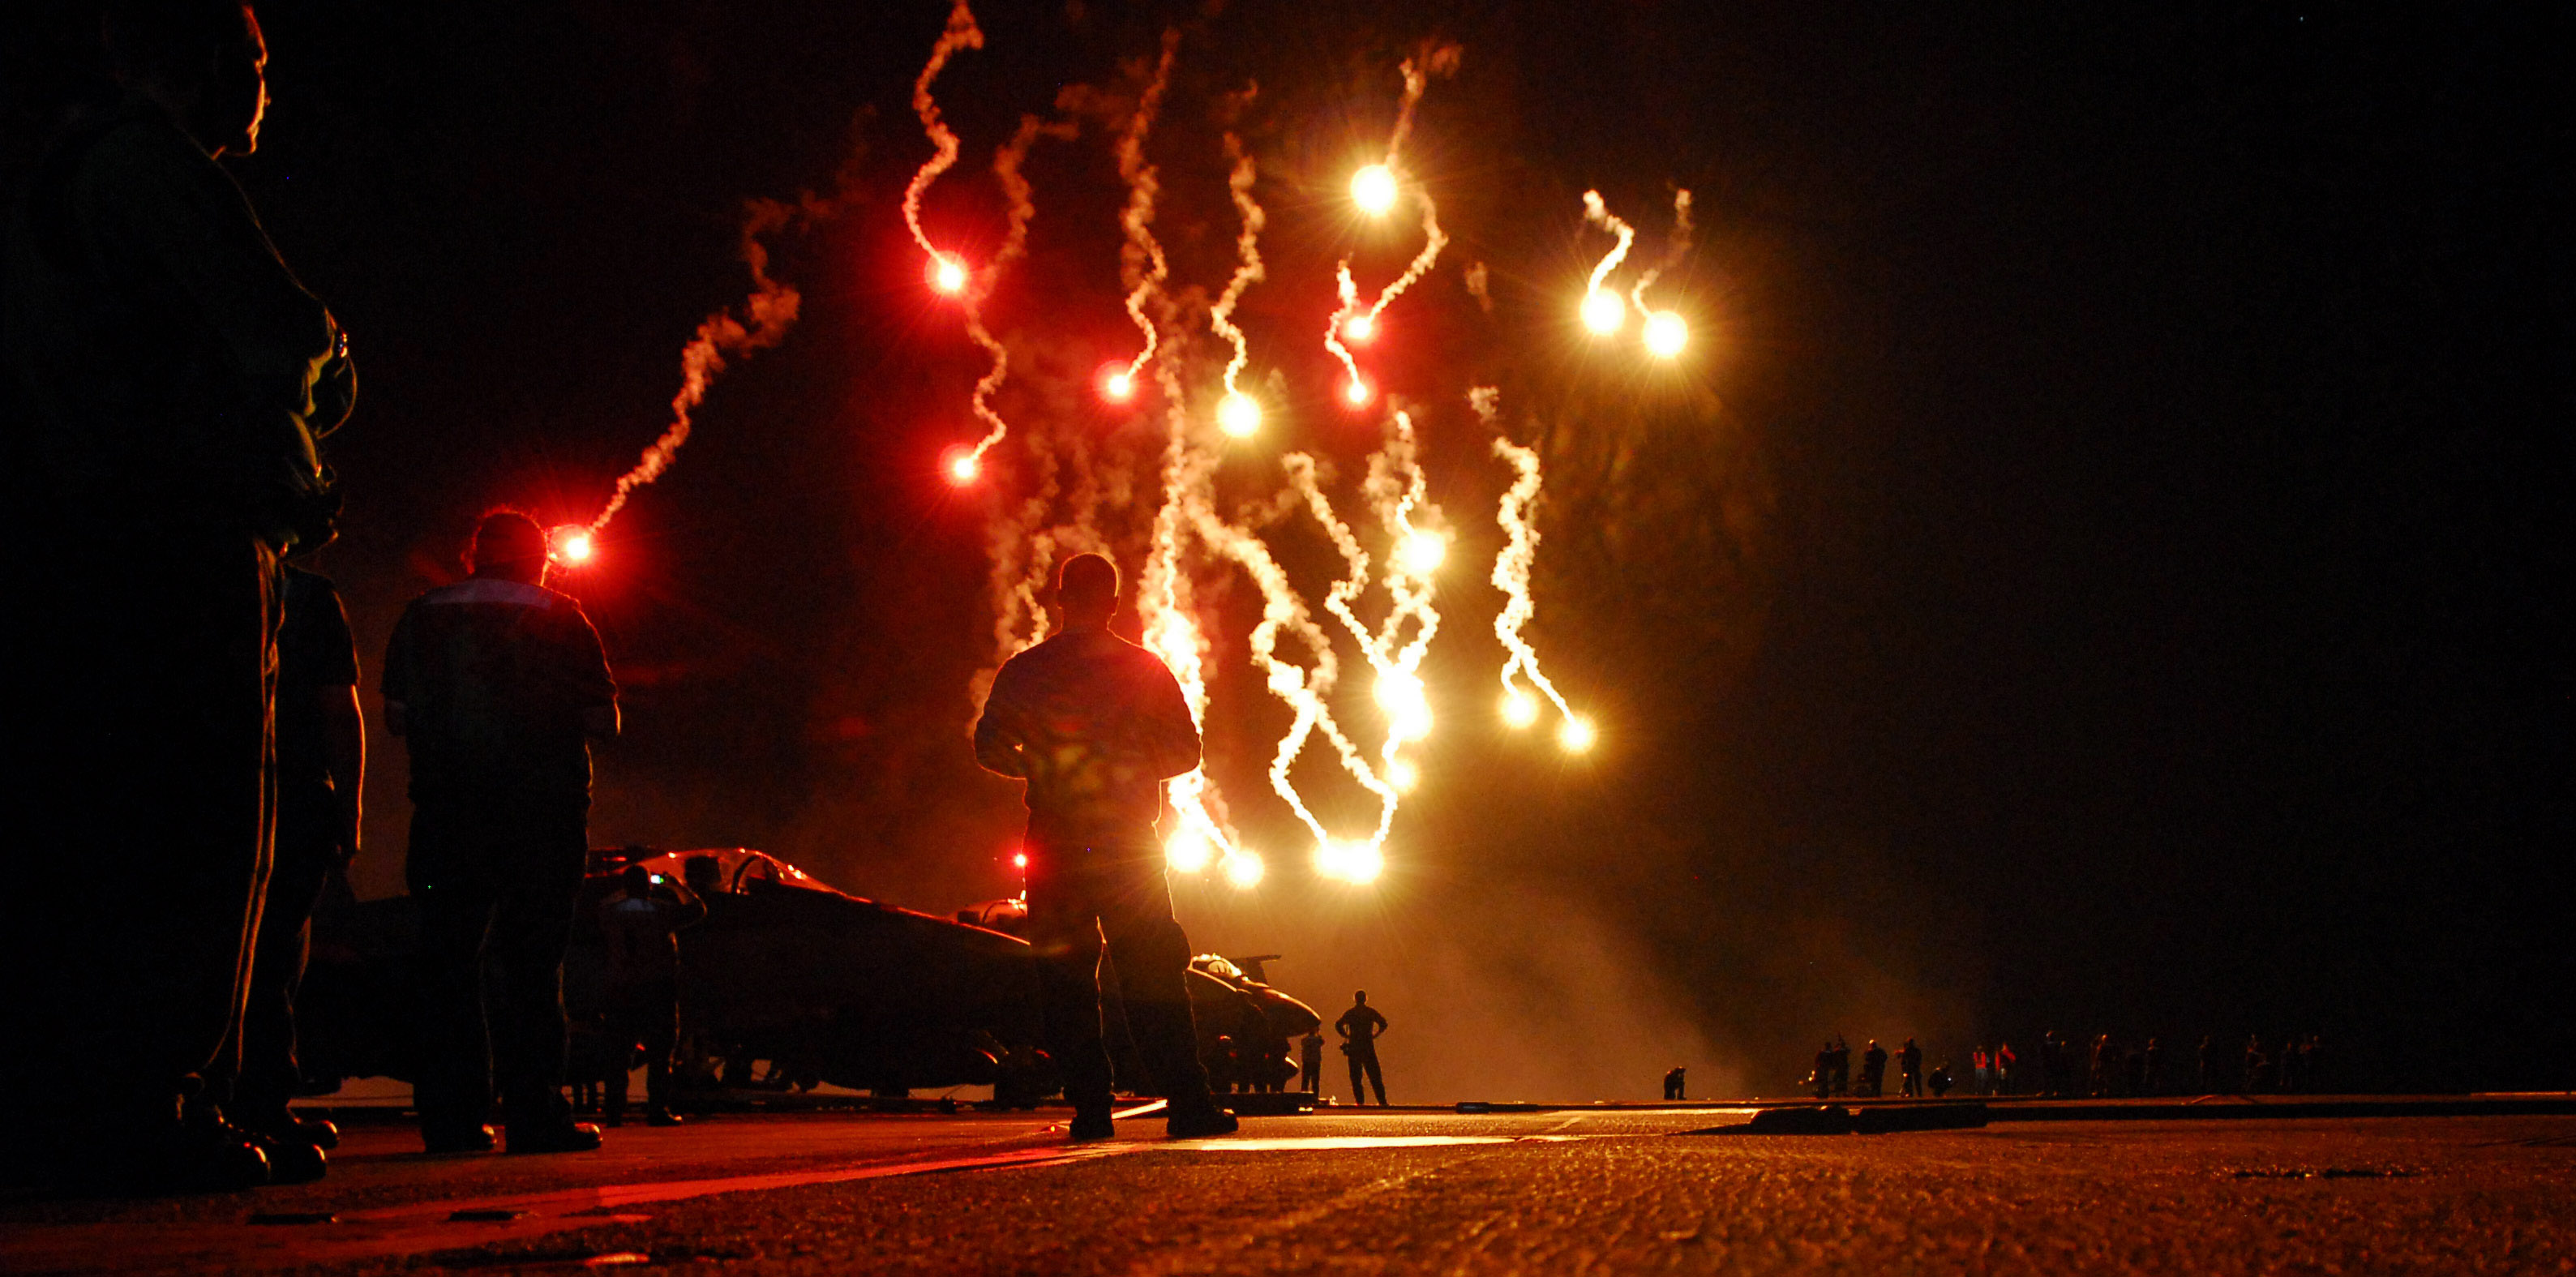 Sailors watch flares light up the sky during a Navy-style fireworks display on the flight deck of the Nimitz-class aircraft carrier USS Ronald Reagan (CVN-76) in 2008. US Navy Photo